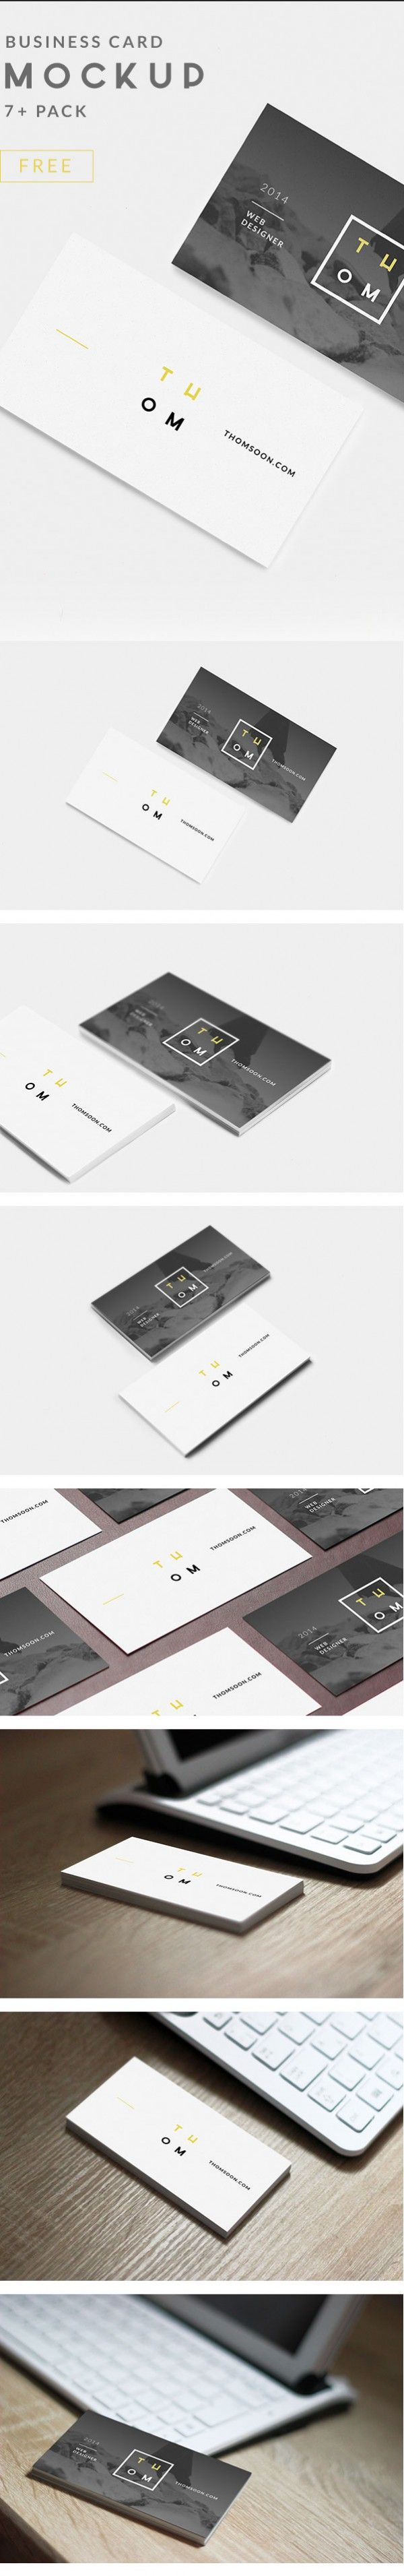 Best 25 cleaning business cards ideas on pinterest visit cards 7 clean business card mo ckup psd magicingreecefo Images